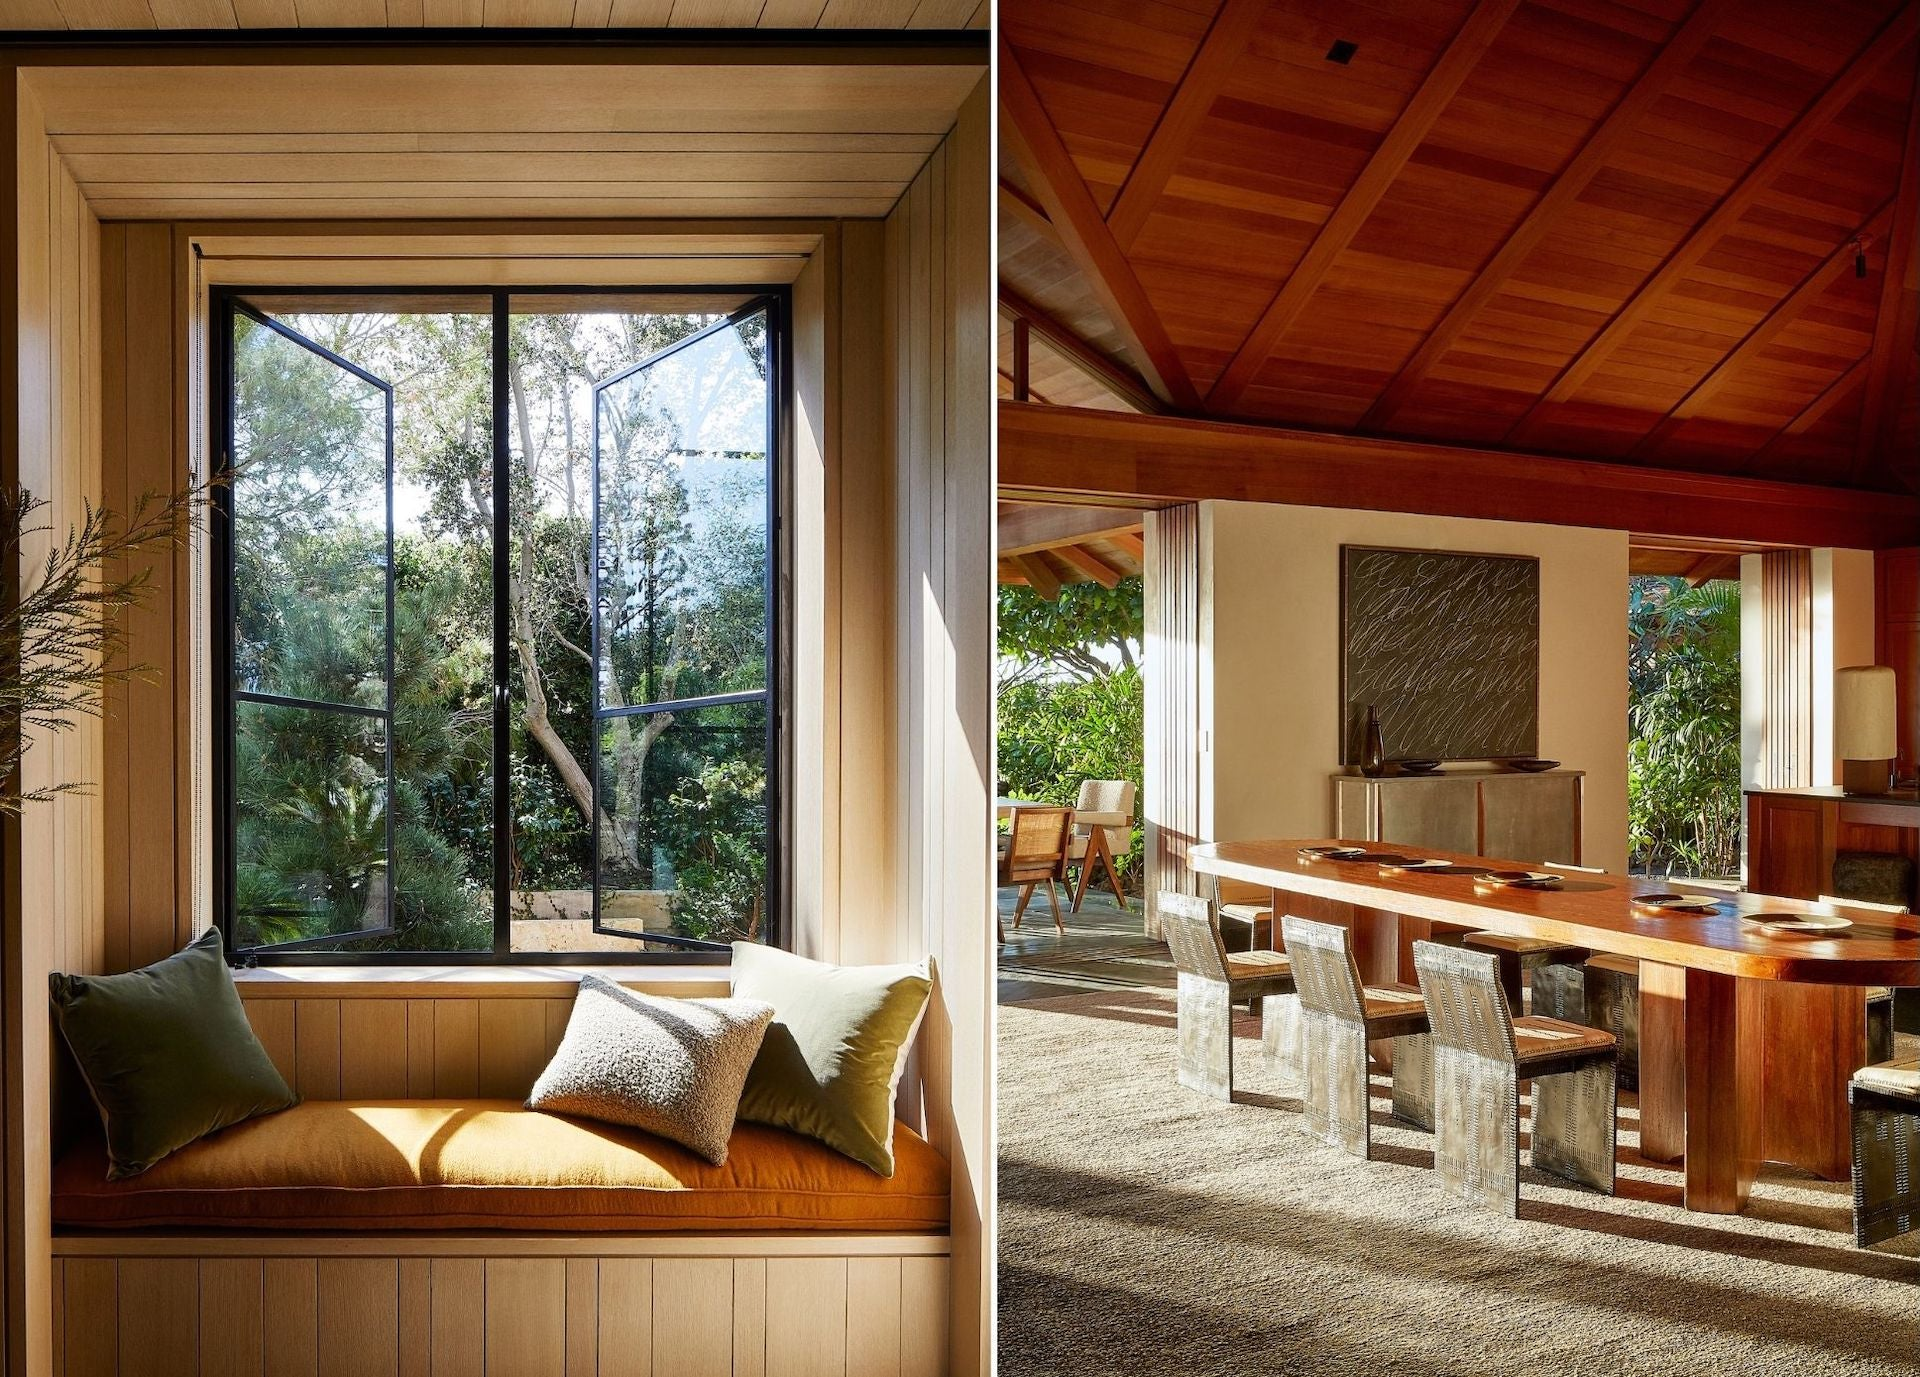 Holmby and Kuki'o by Clements Design. Photos © William Abranowicz and Shade Degges; courtesy of Rizzoli